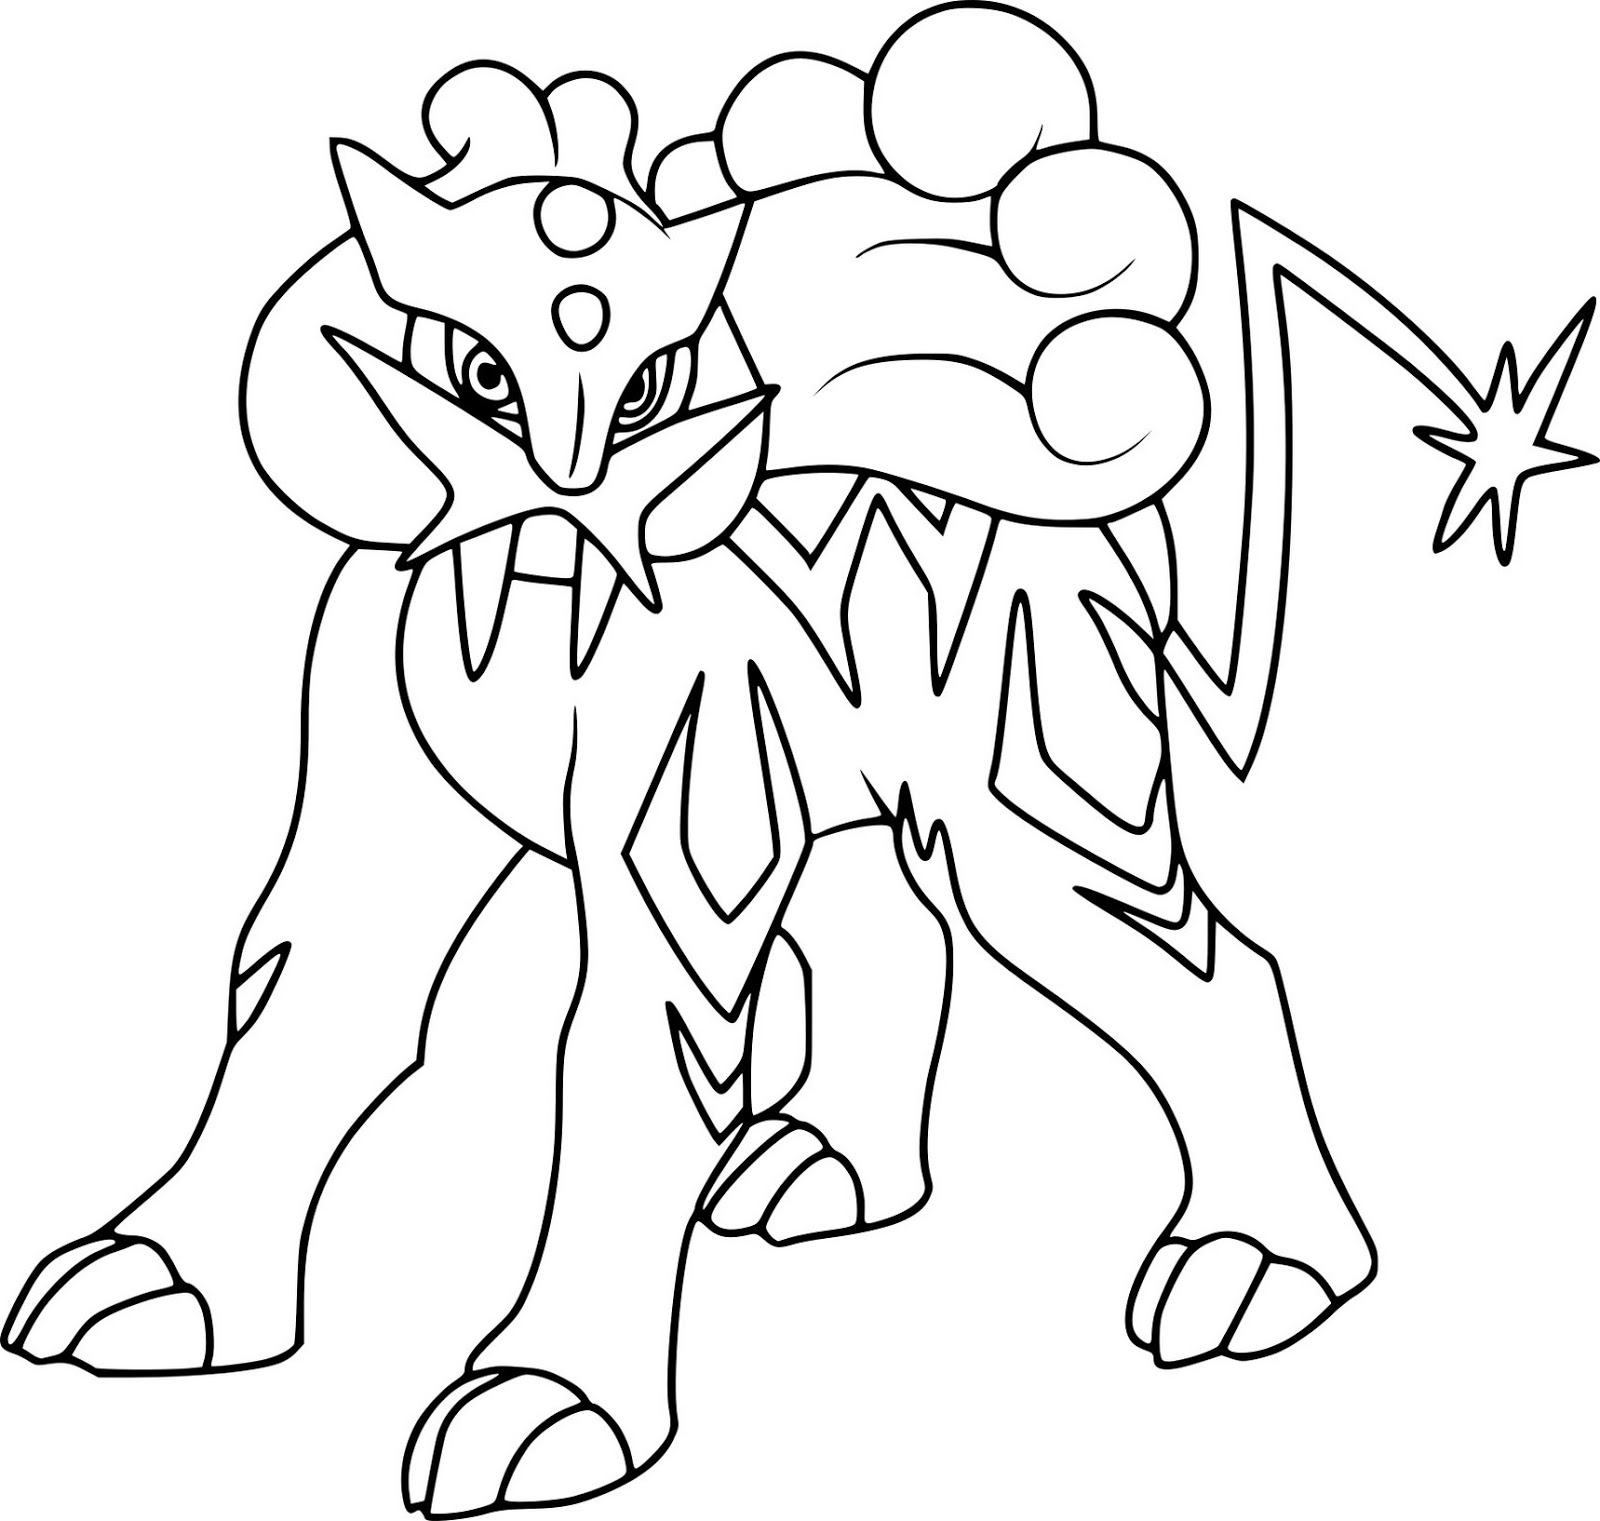 legendary pokemon colouring pages gen 1 legendary pokemon coloring pages coloring pages legendary pages colouring pokemon